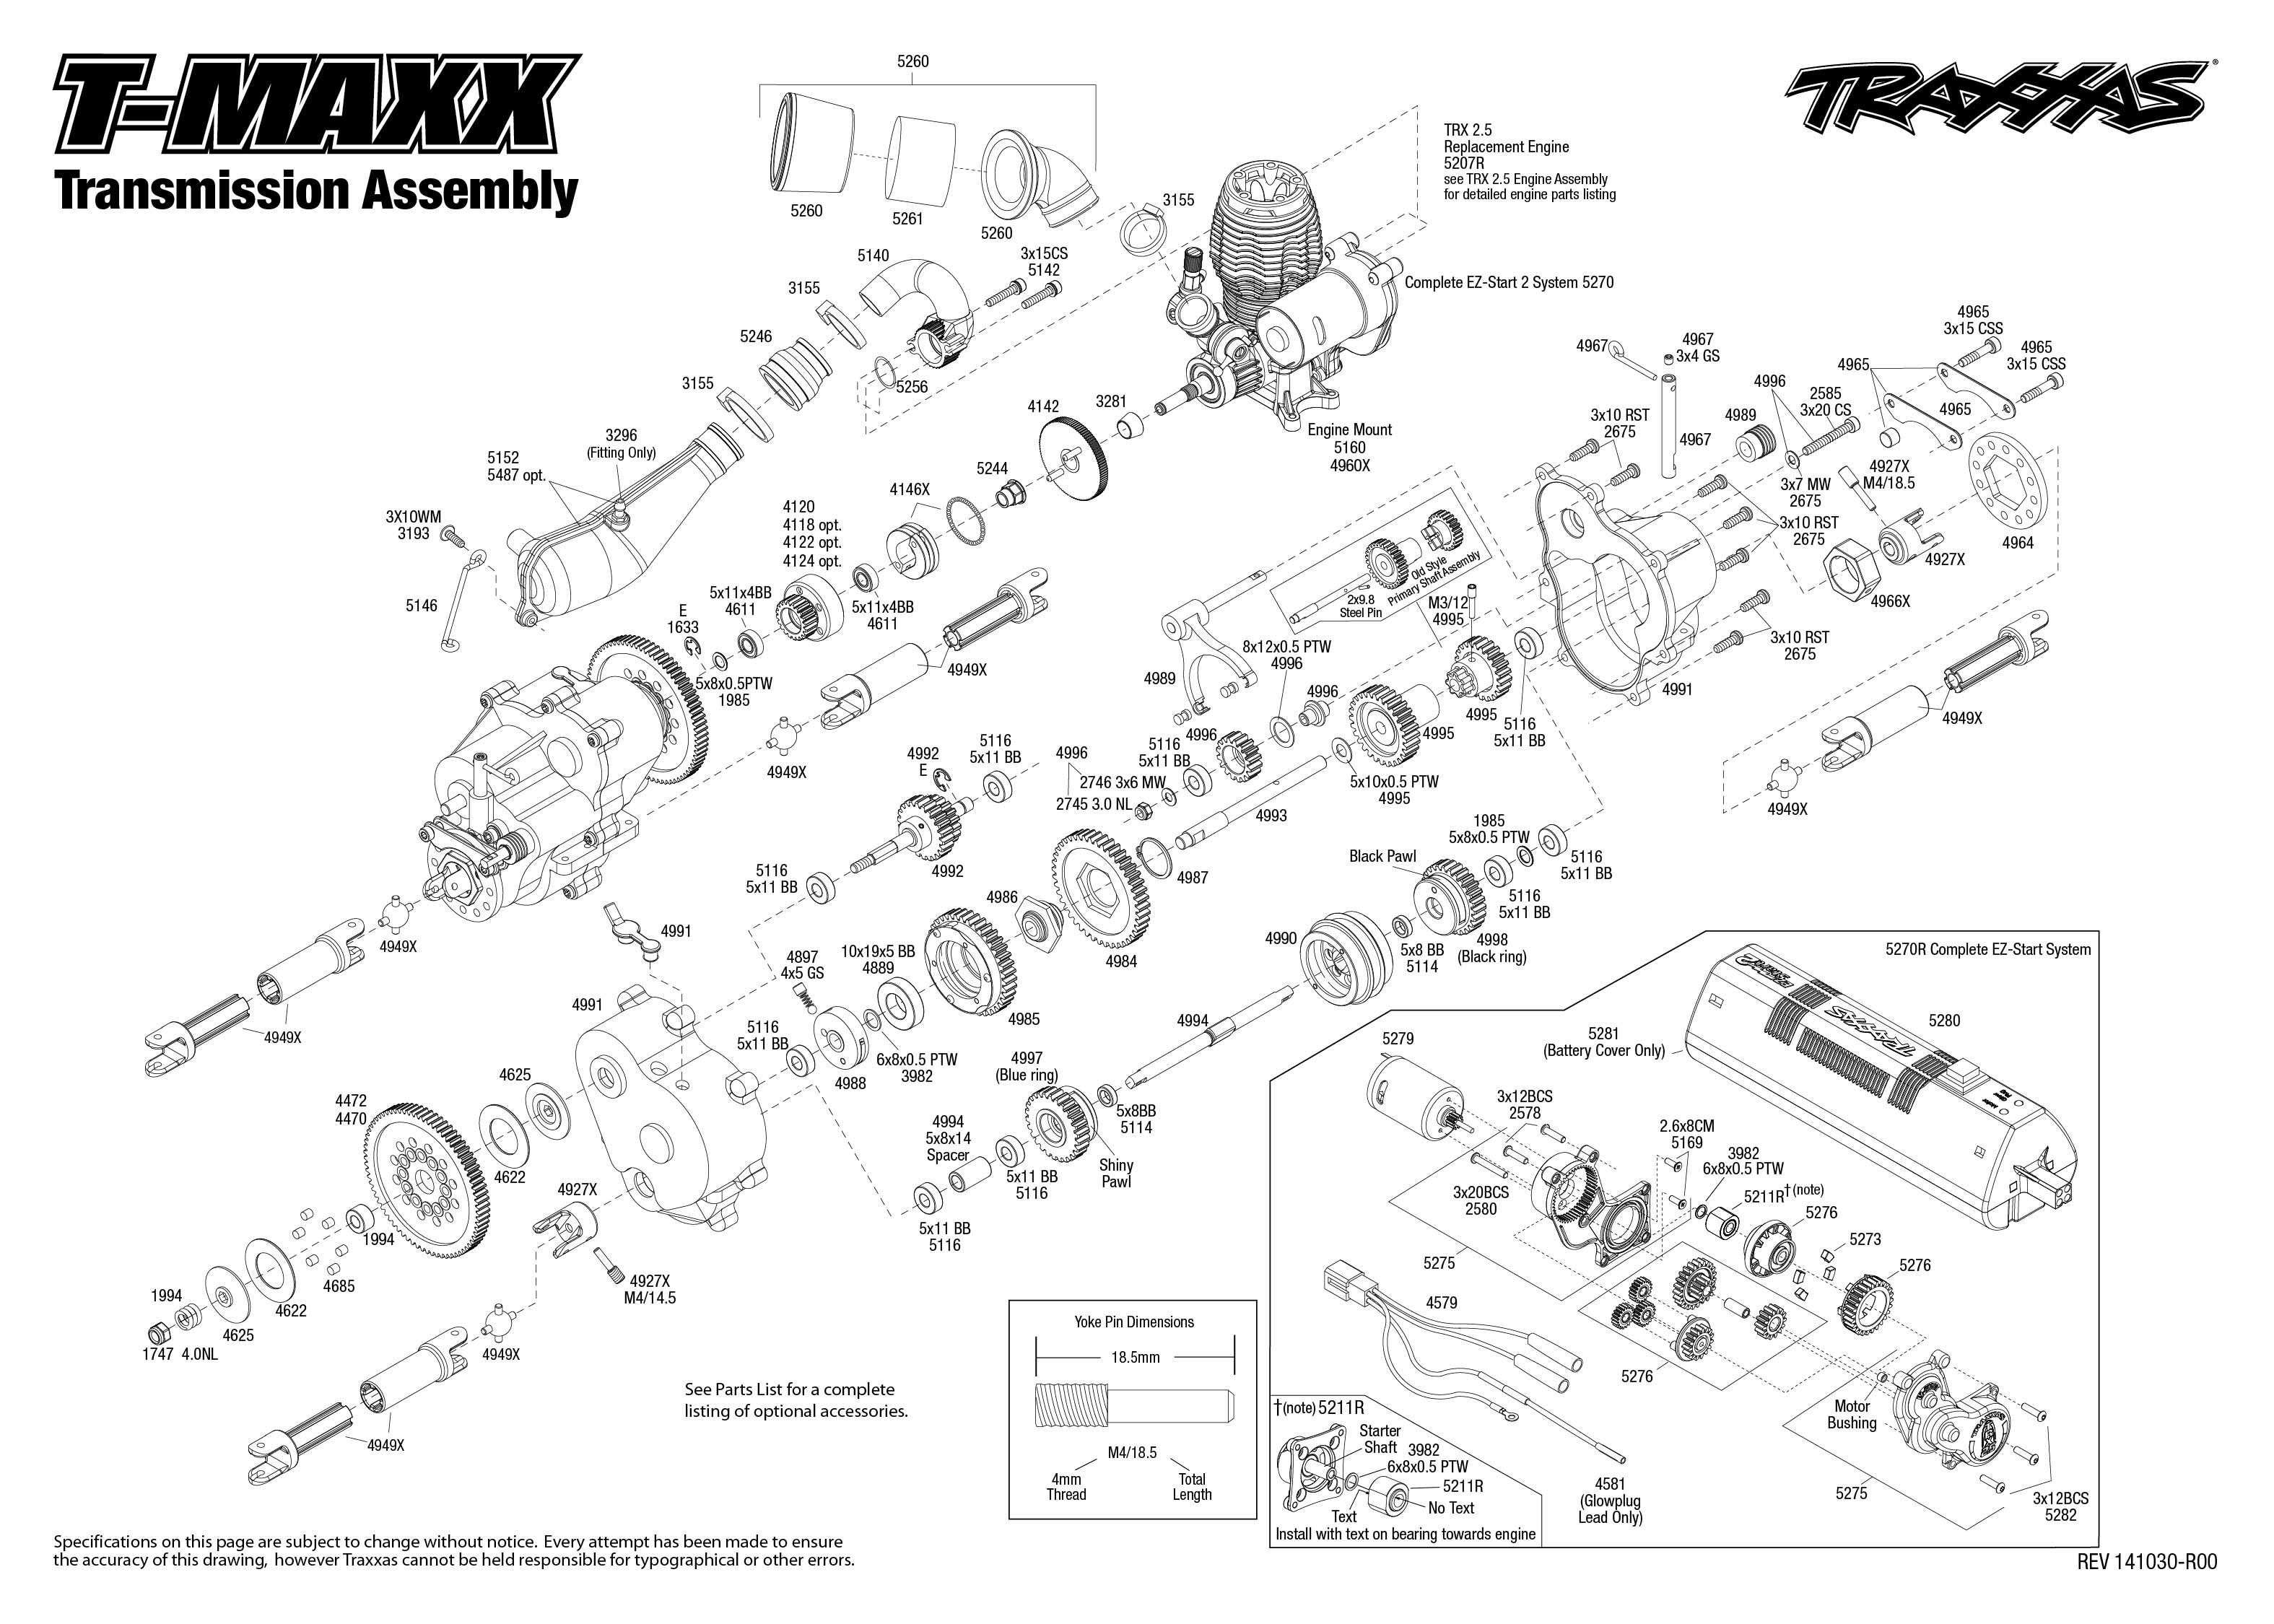 49104 1_Exploded views_141030_49104 1 Transmission Assembly t maxx (49104 1) transmission assembly exploded view traxxas 3-Way Switch Wiring Diagram for Switch To at gsmportal.co